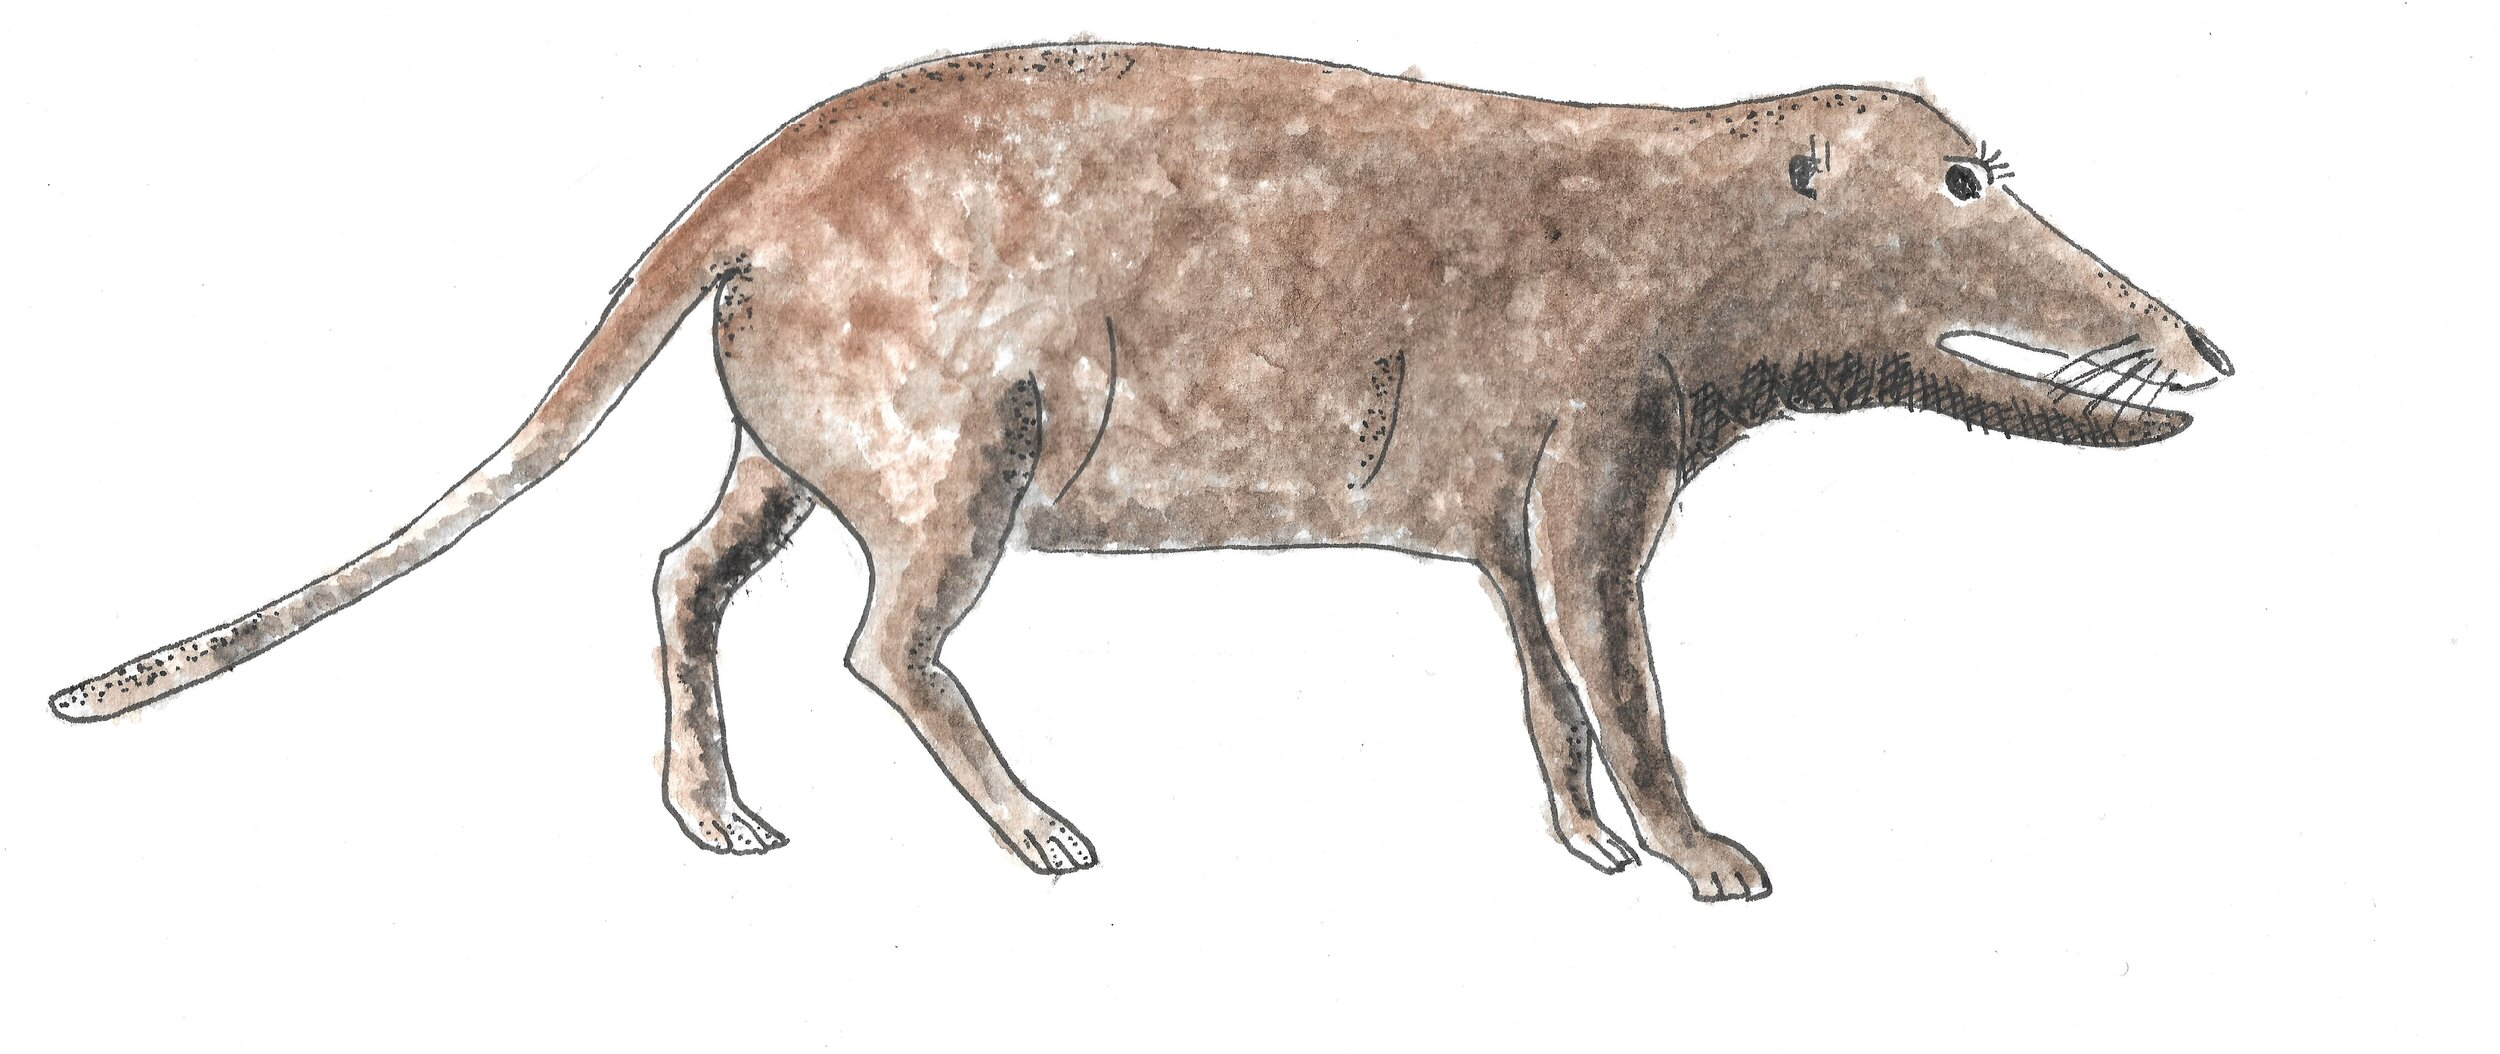 Pakicetus was the wolf-like, fish-eating, amphibious whale ancestor.